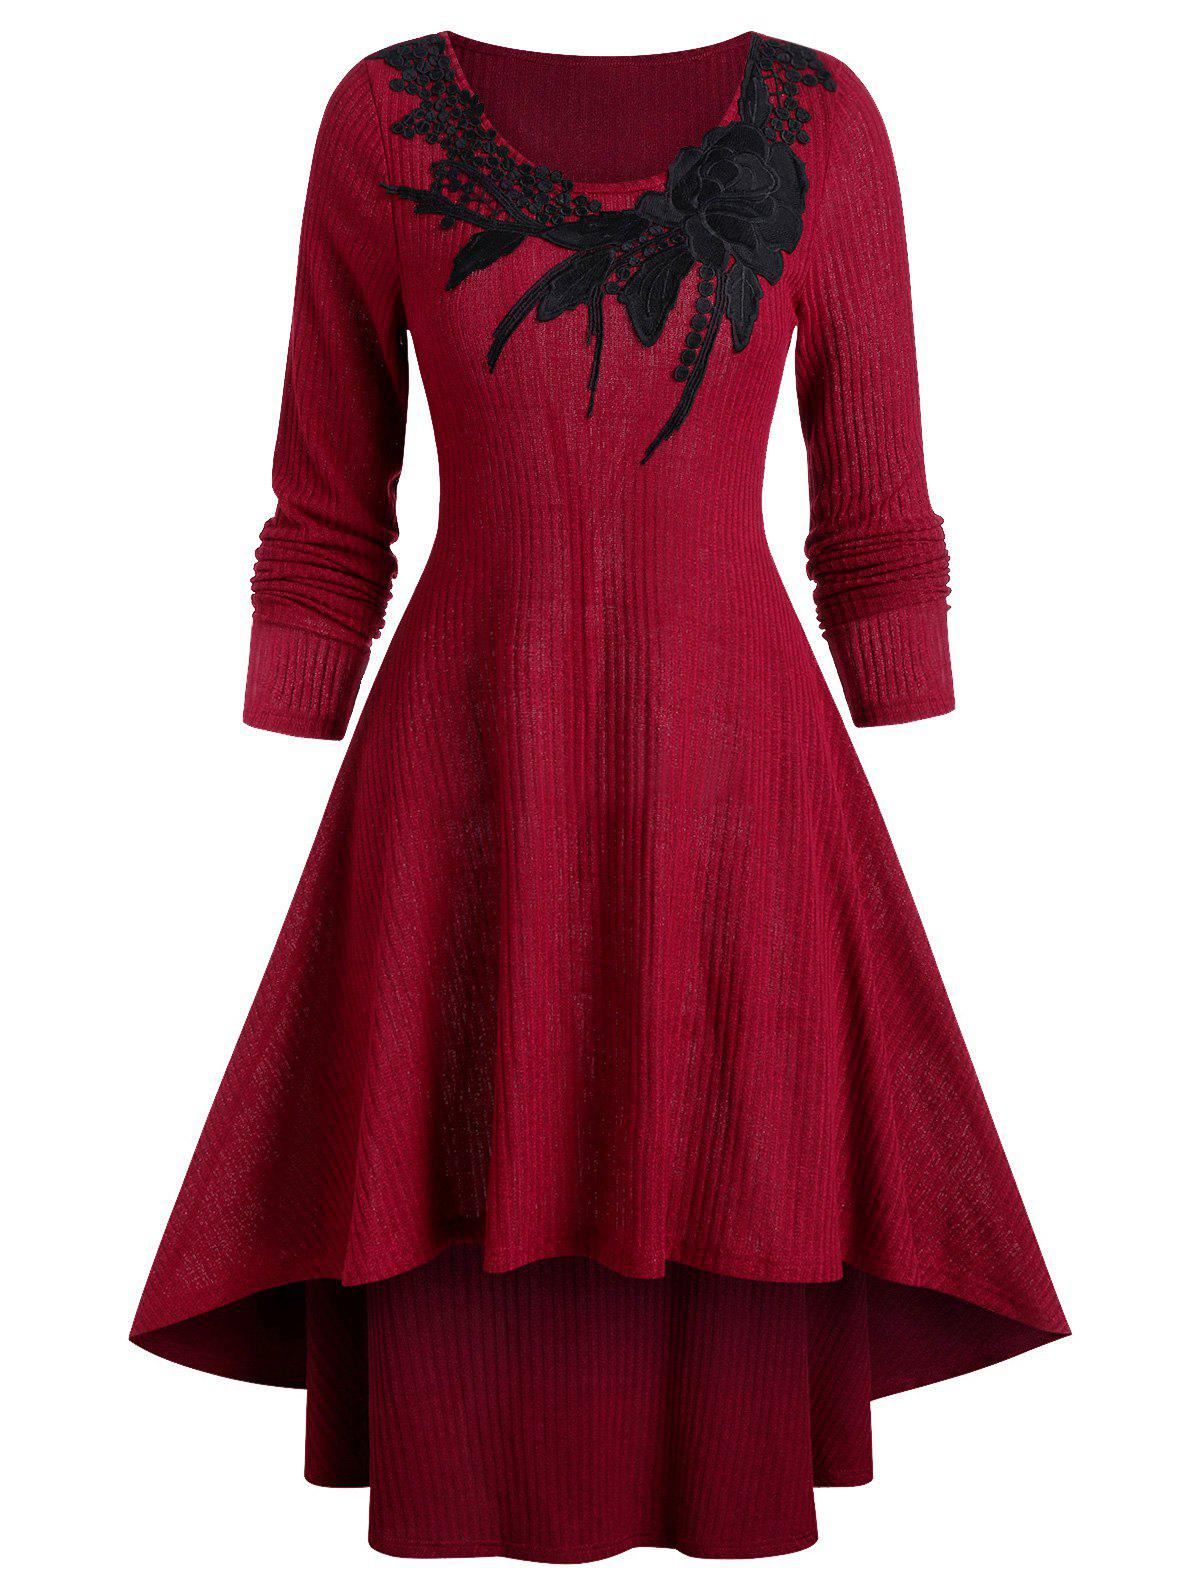 Buy Round Collar Applique High Low Sweater Dress